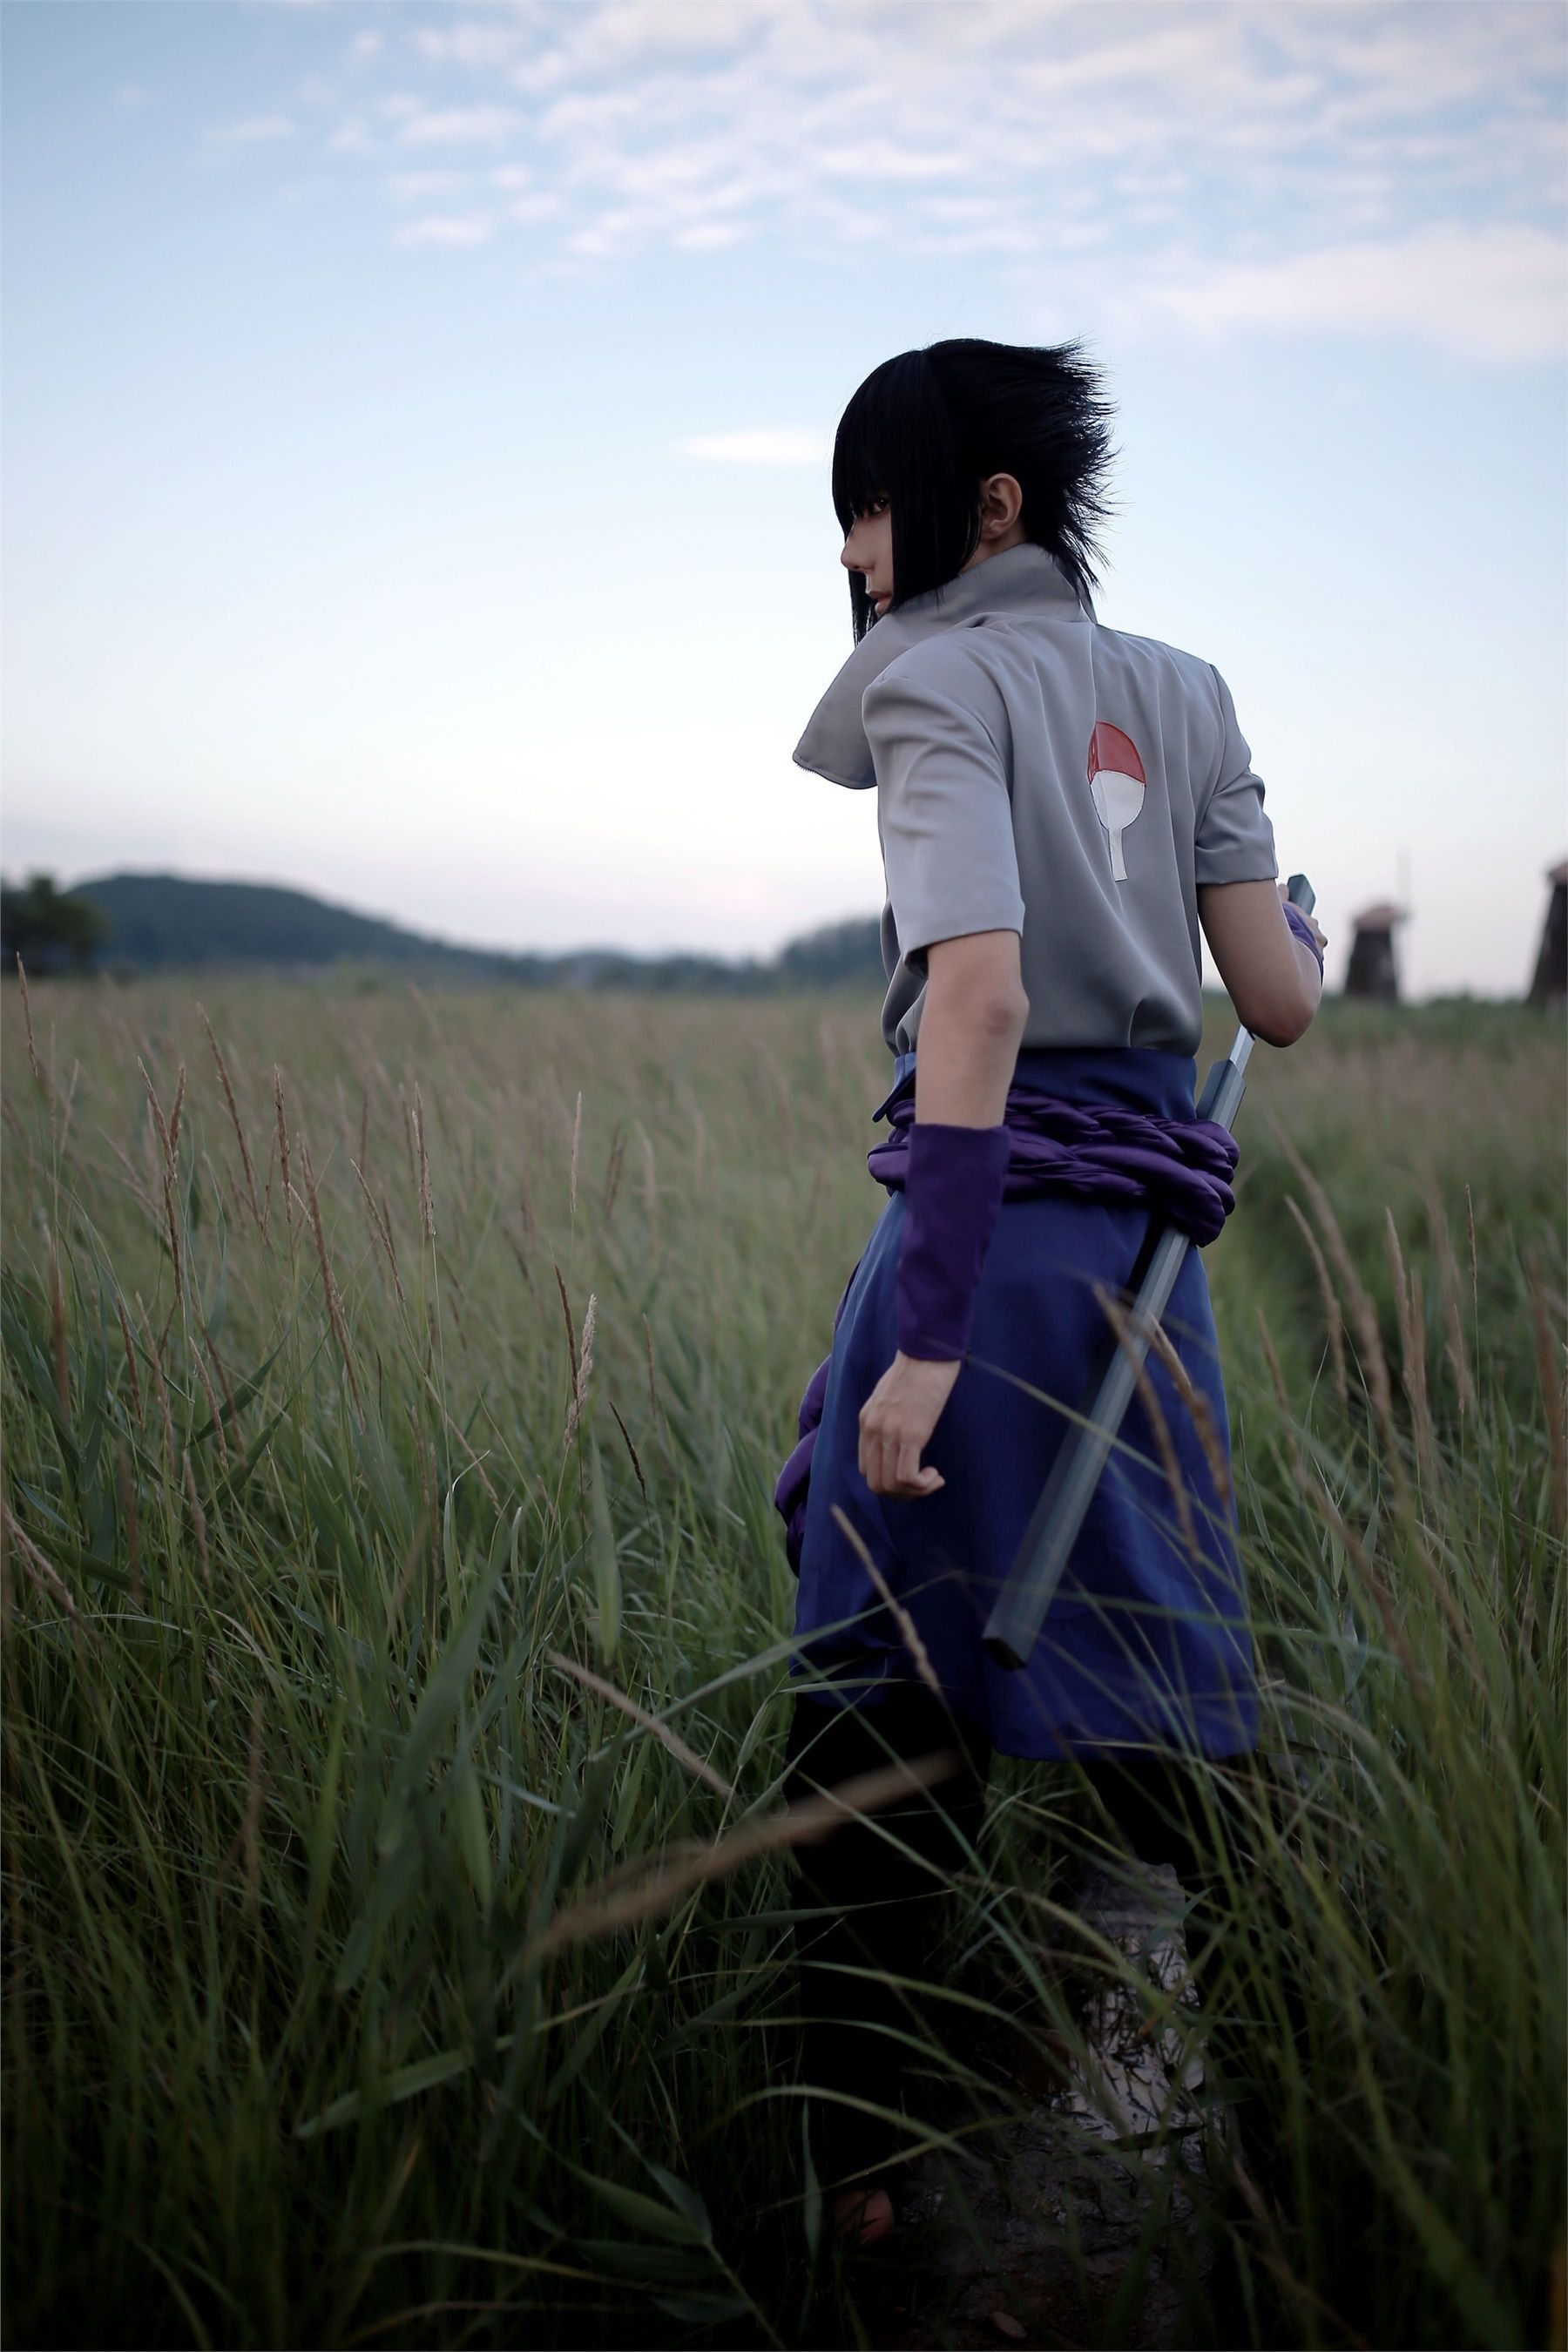 Naruto Shippuden Sasuke Uchiha Changcheon Changcheon 宇智波佐